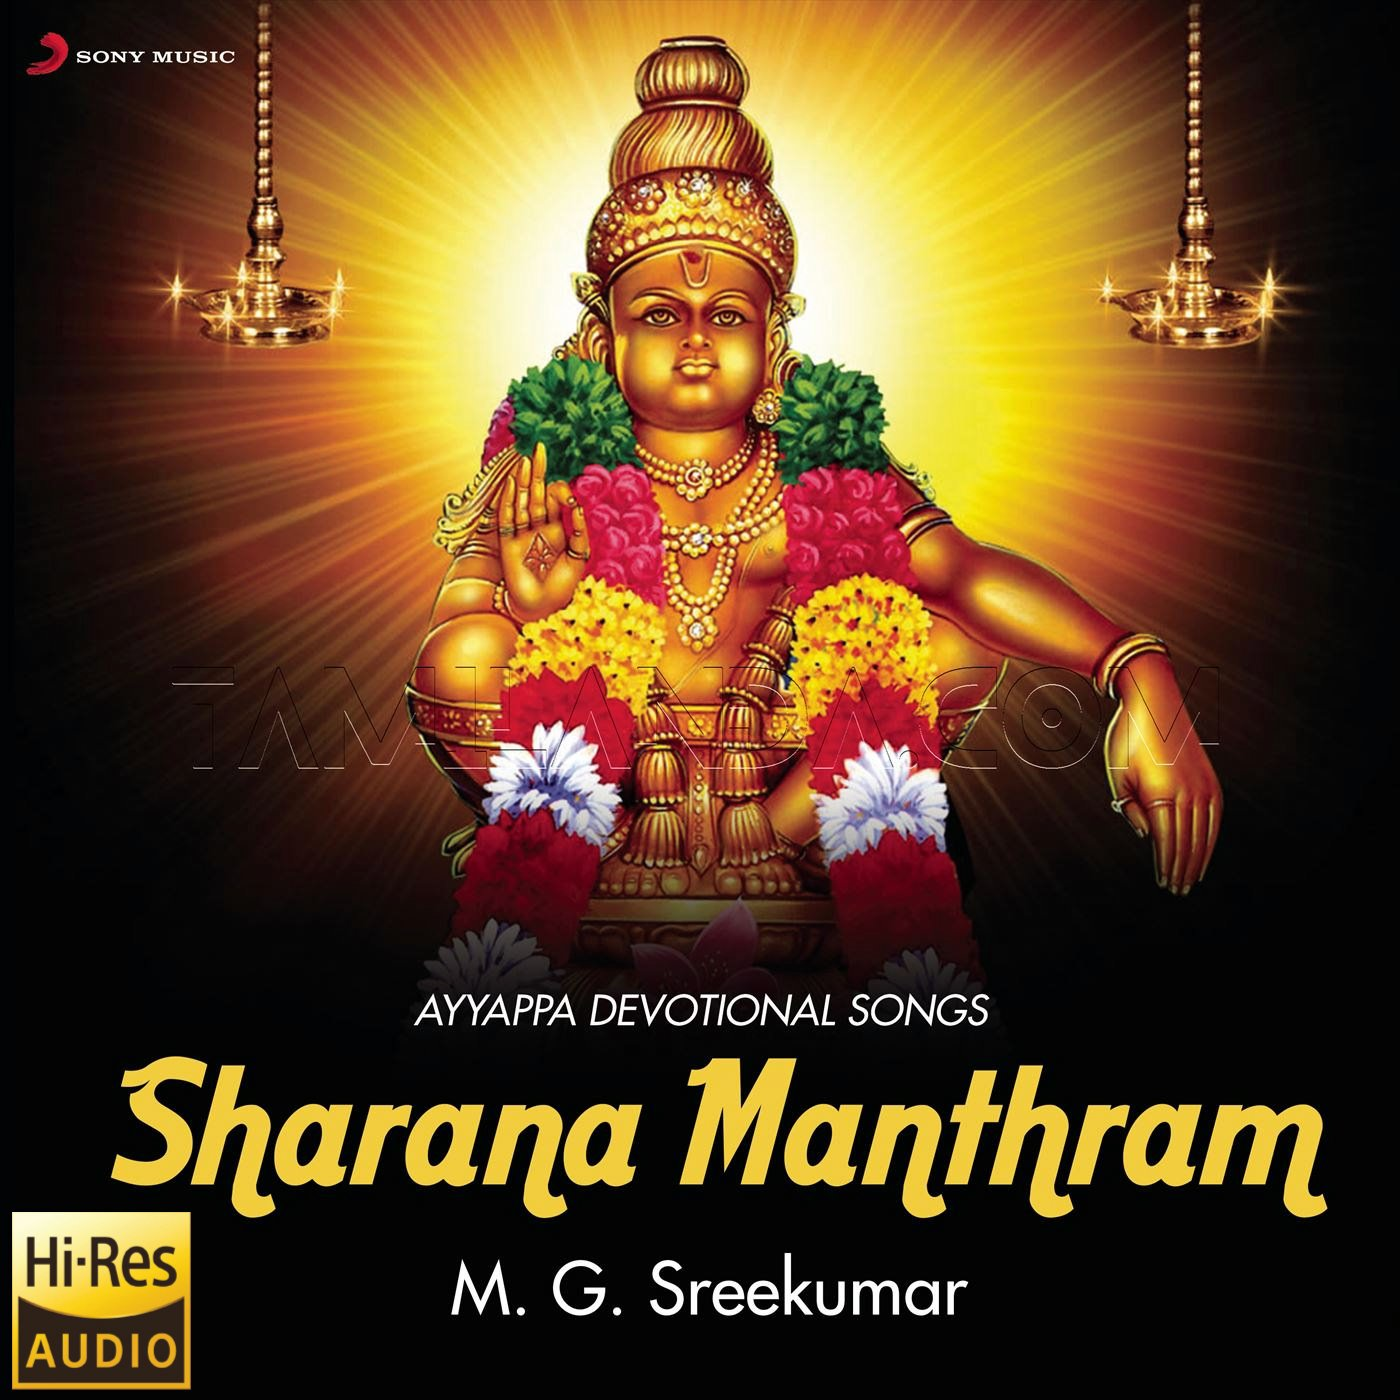 Sharana Manthram FLAC Songs 24 BIT 88 KHZ